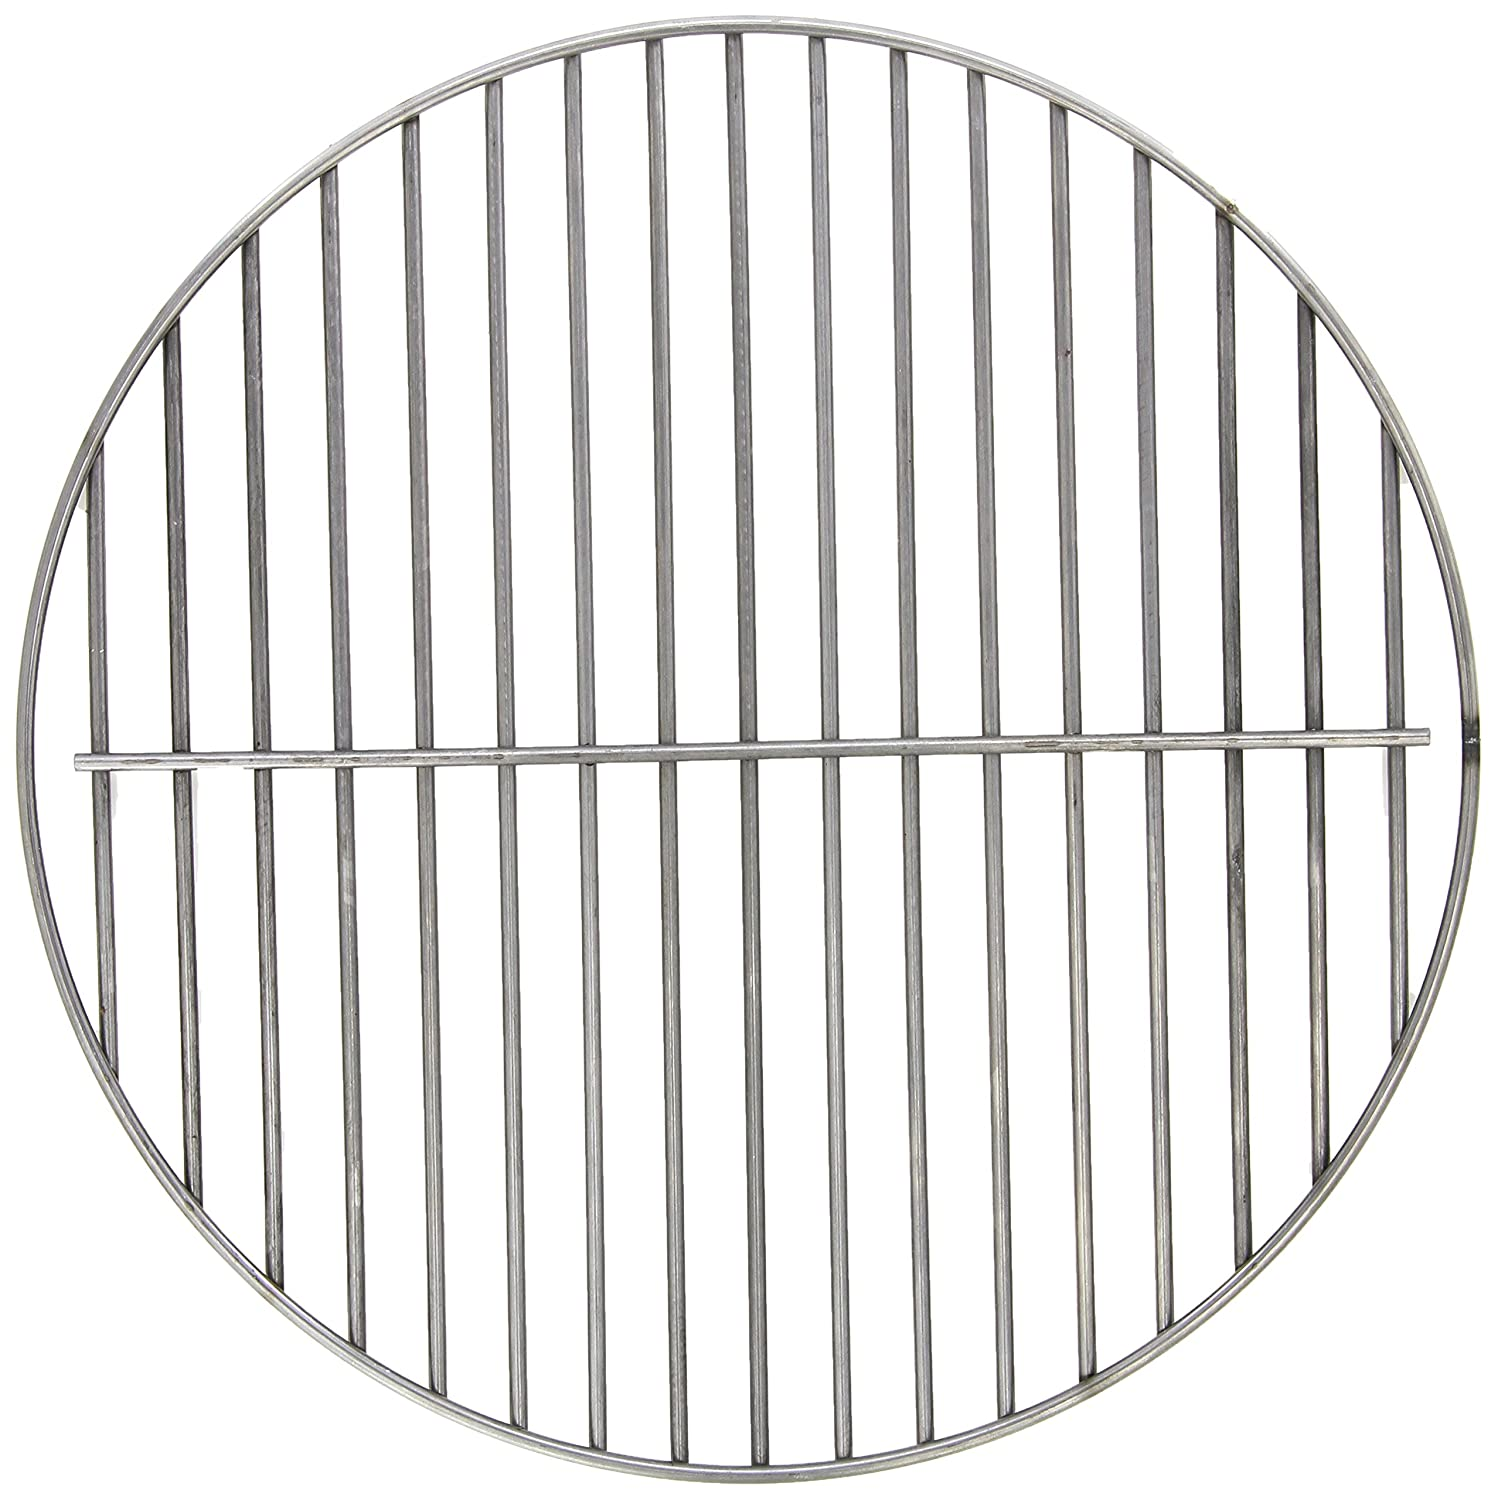 Weber 7440 Replacement Charcoal Grates